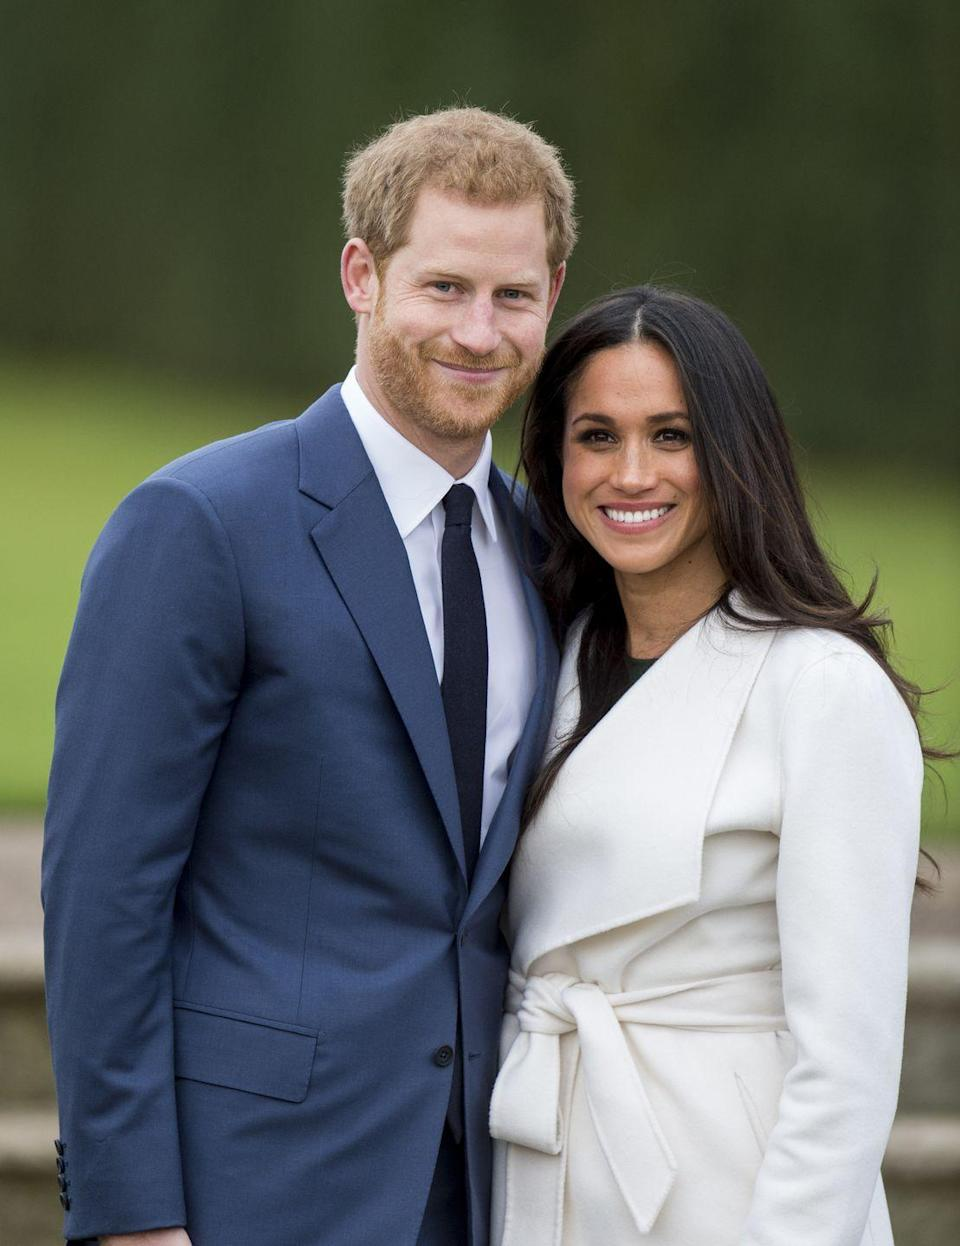 """<p>Meghan and Harry made this <a href=""""https://www.cosmopolitan.com/entertainment/celebs/a30445485/meghan-markle-prince-harry-stepping-back-senior-royals/"""" rel=""""nofollow noopener"""" target=""""_blank"""" data-ylk=""""slk:announcement on January 8"""" class=""""link rapid-noclick-resp"""">announcement on January 8</a>, 2020. They also plan to work to """"become financially independent while continuing to fully support Her Majesty The Queen,"""" and to balance their time between the United Kingdom and North America. As you might imagine, the <a href=""""https://www.cosmopolitan.com/entertainment/celebs/a30446986/queen-elizabeth-meghan-markle-prince-harry-quitting-royal-duties-reaction/"""" rel=""""nofollow noopener"""" target=""""_blank"""" data-ylk=""""slk:Queen doesn't seem pleased"""" class=""""link rapid-noclick-resp"""">Queen doesn't seem pleased</a> about all of this.</p>"""